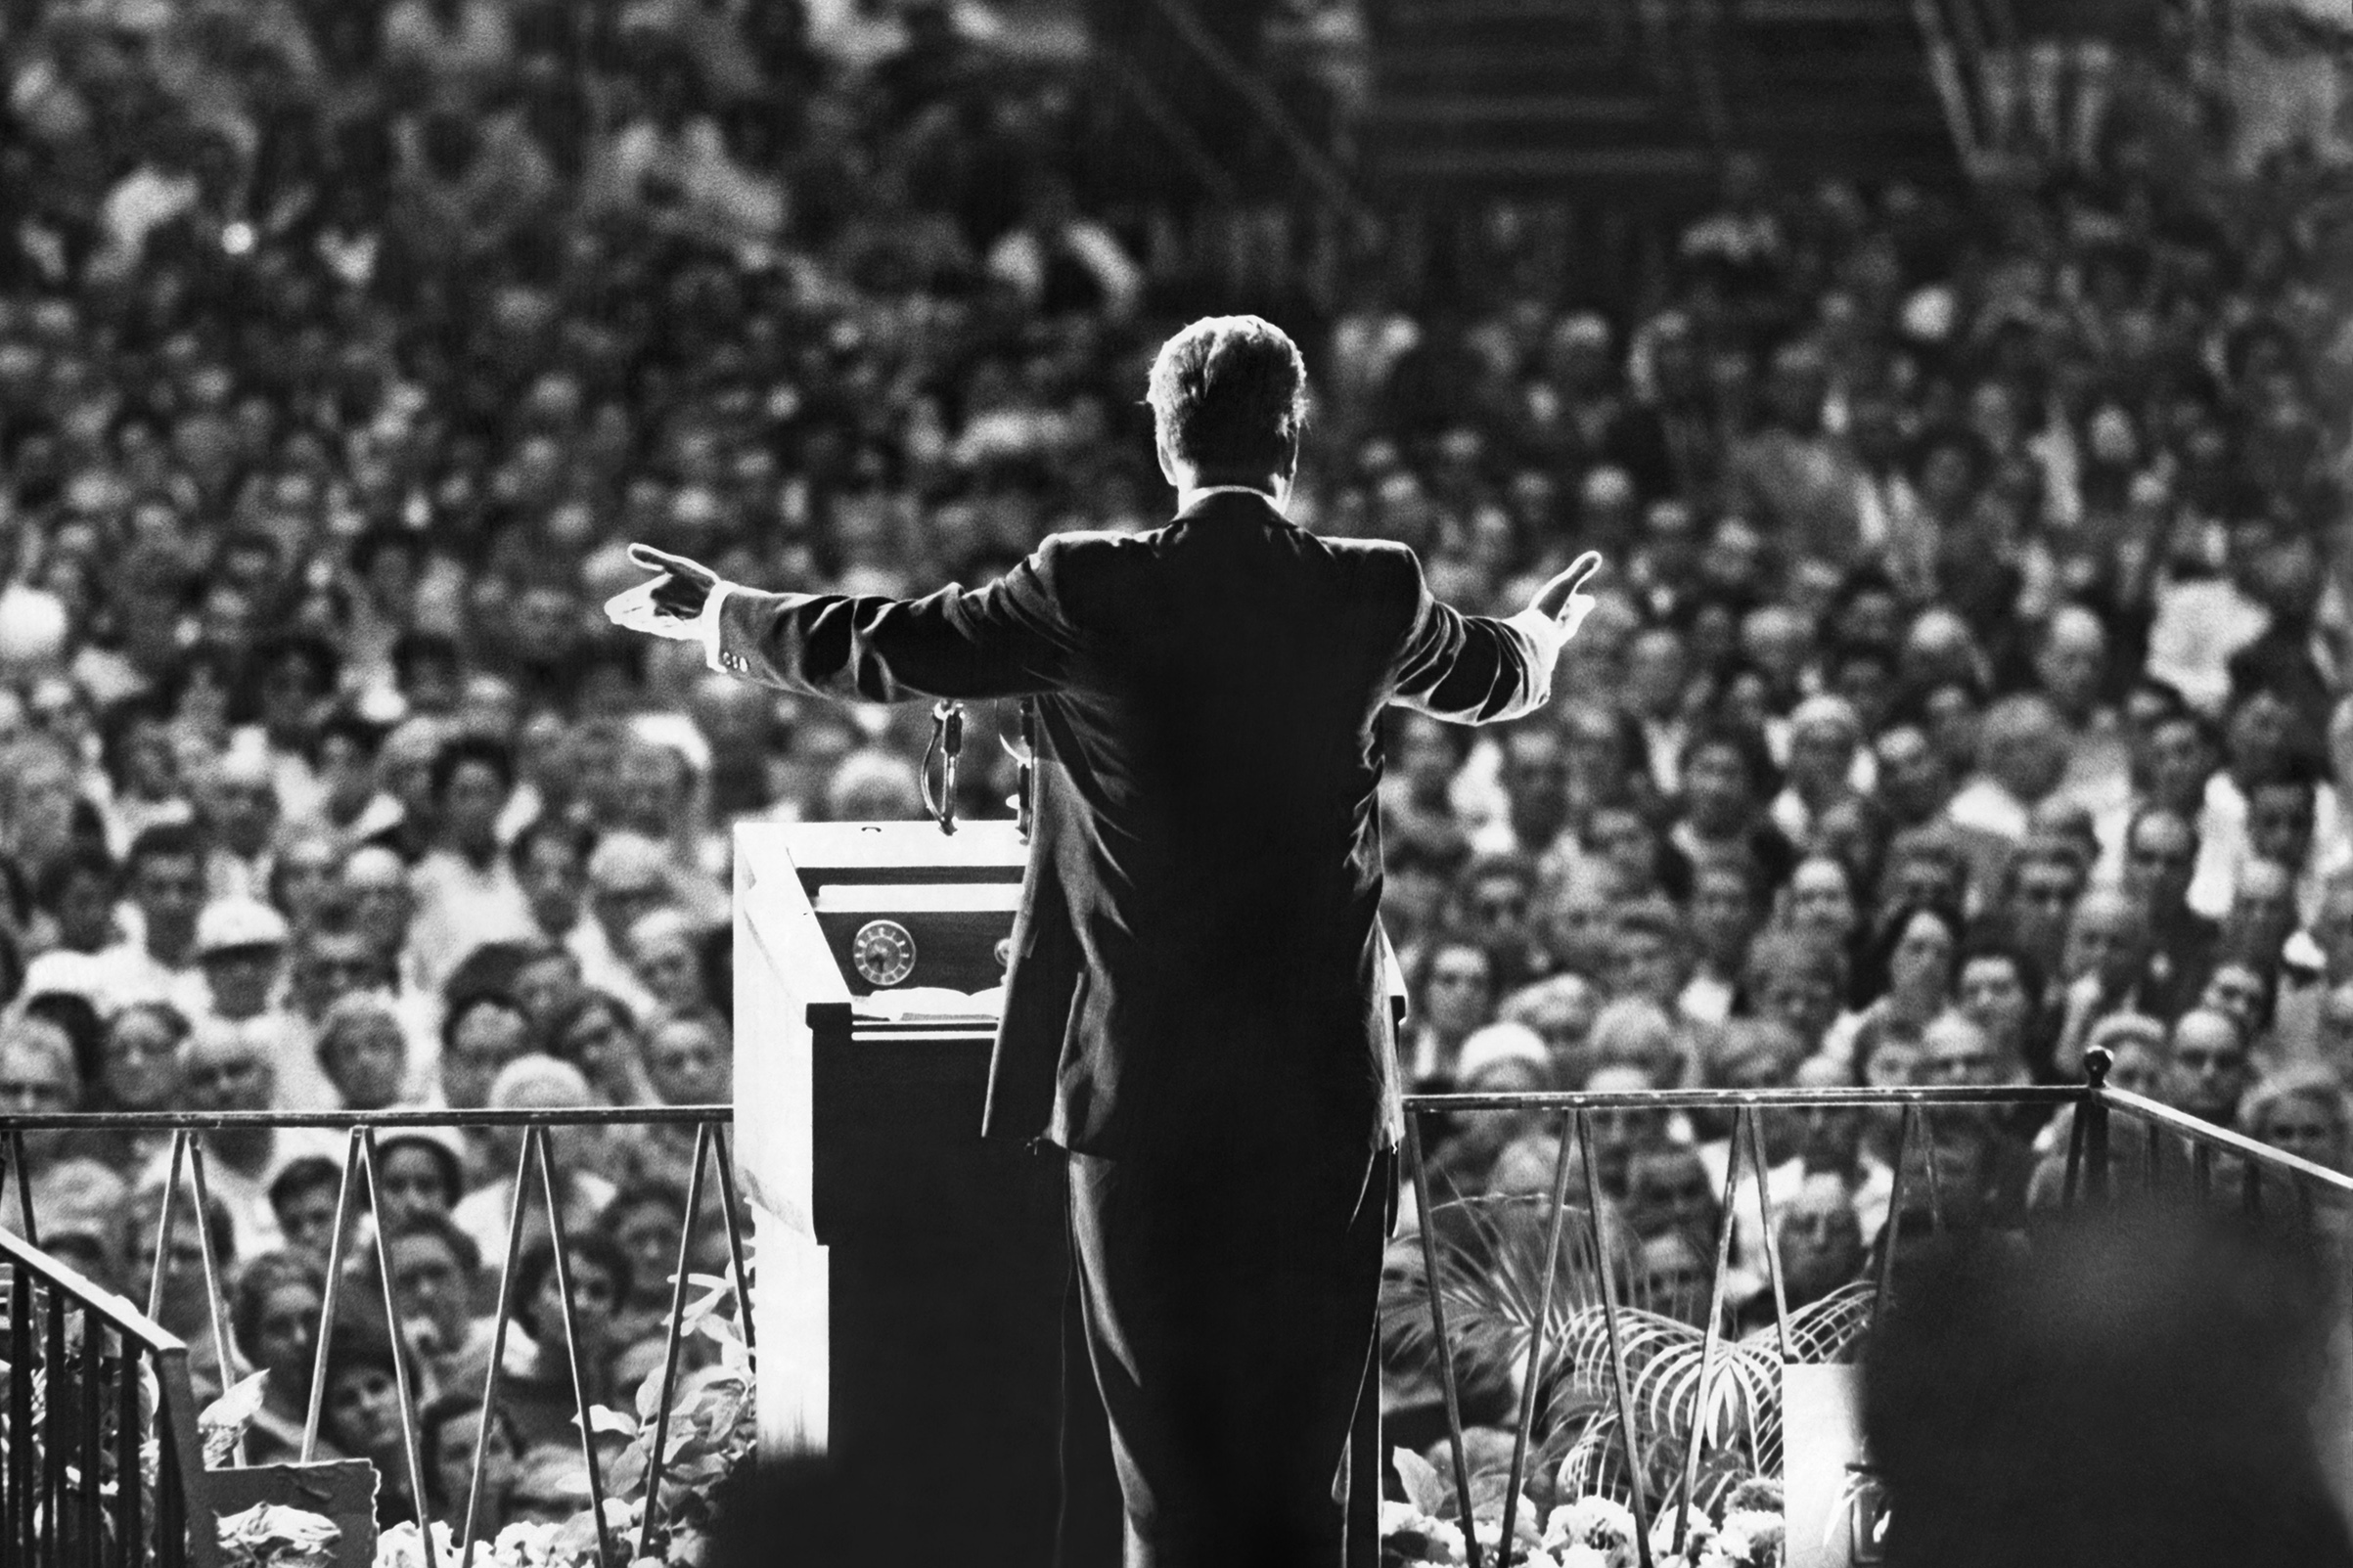 Billy Graham preaches at the Miami Beach Exhibition Hall in March 1961